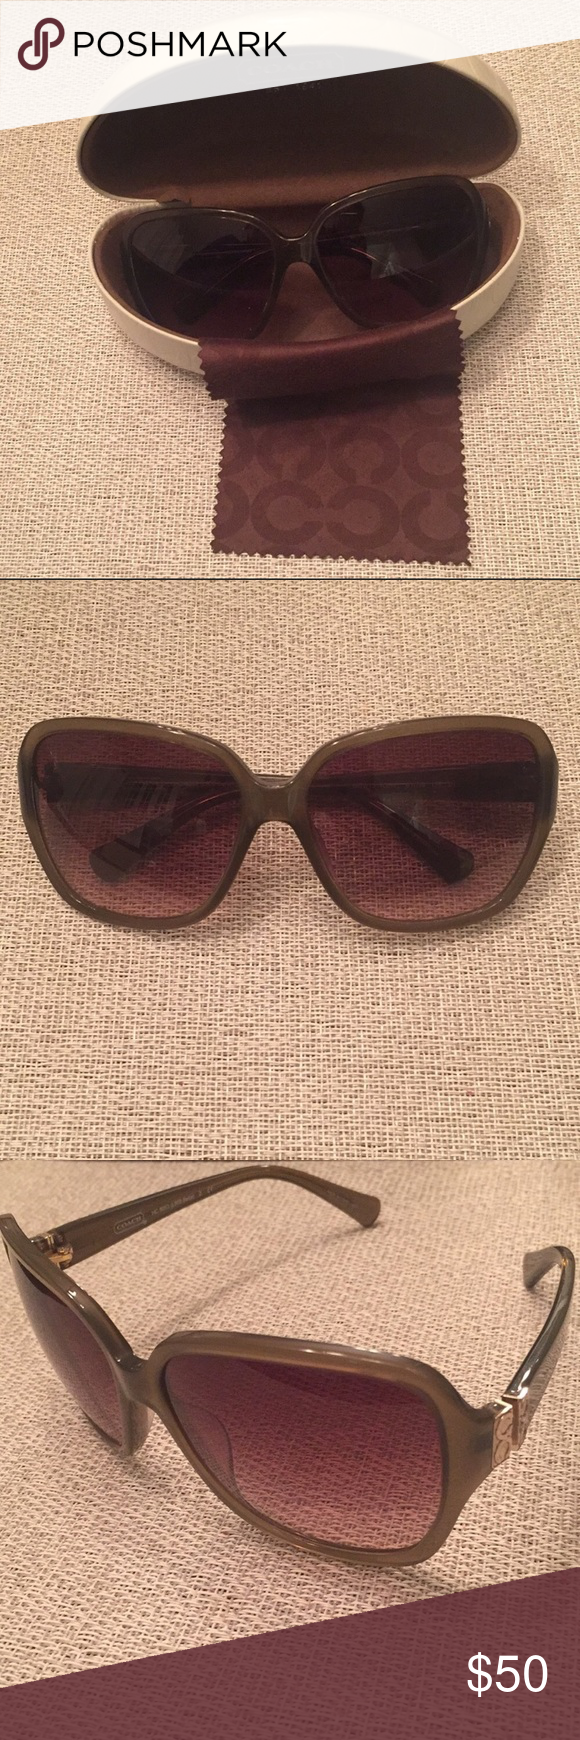 0590fca4231e8 ... coupon code for coach olive green sunglasses gently used authentic  olive green coach sunglasses. they